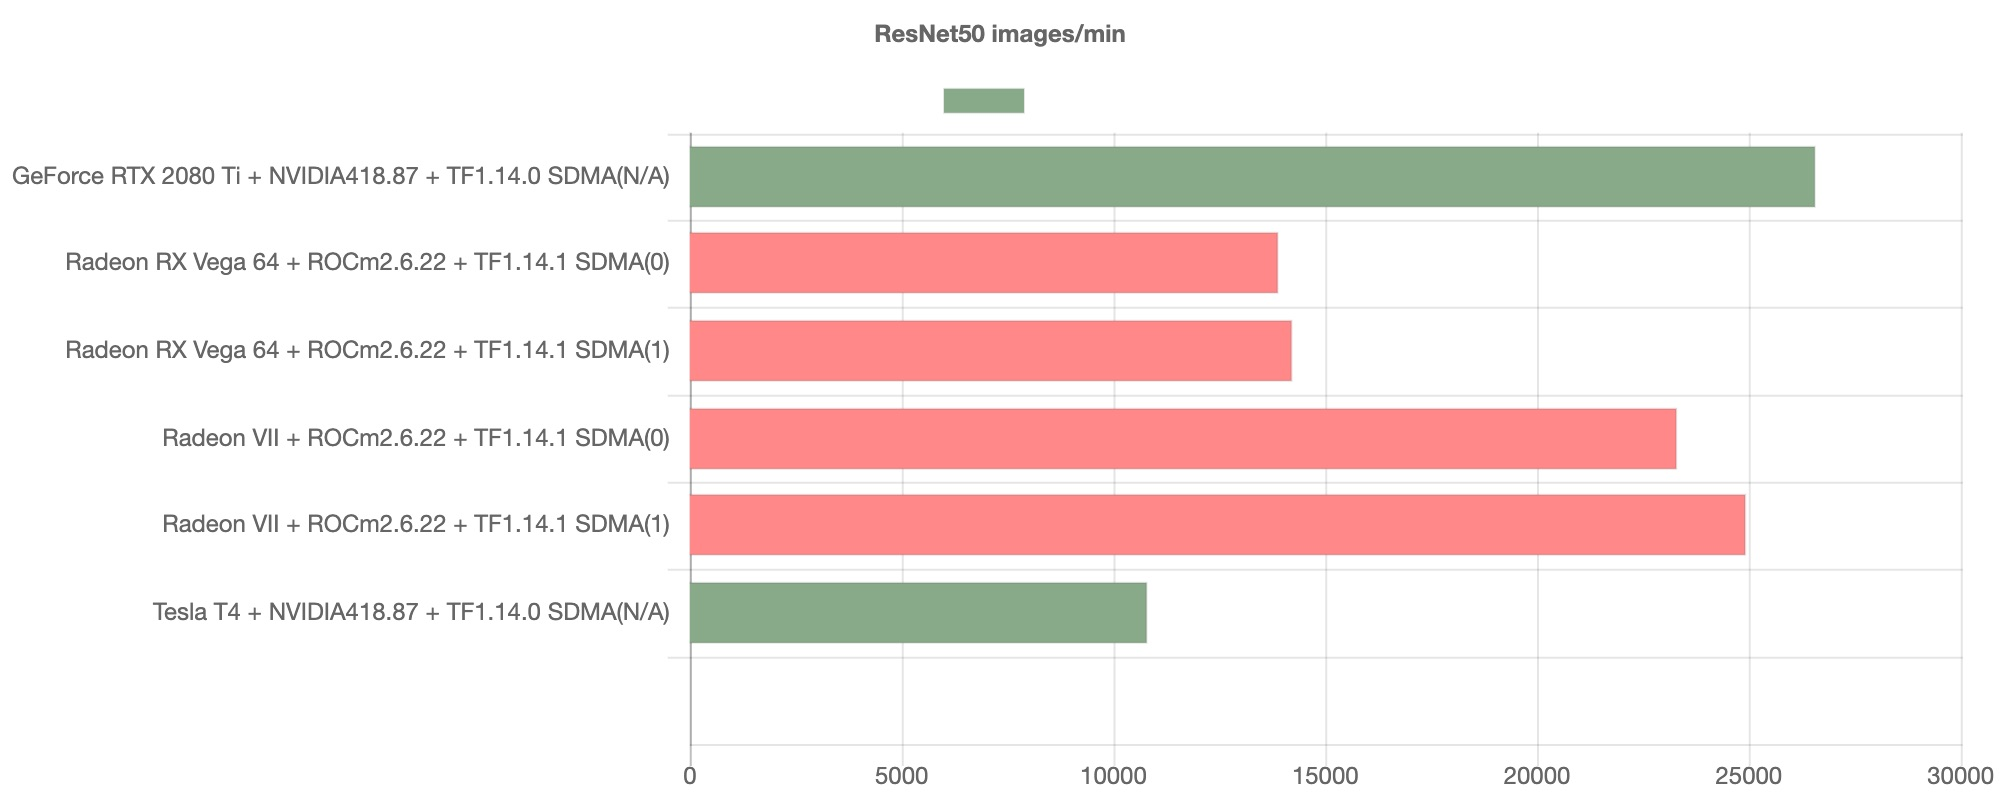 image from Comparing benchmarks between ROCm and NVIDIA(Inference)